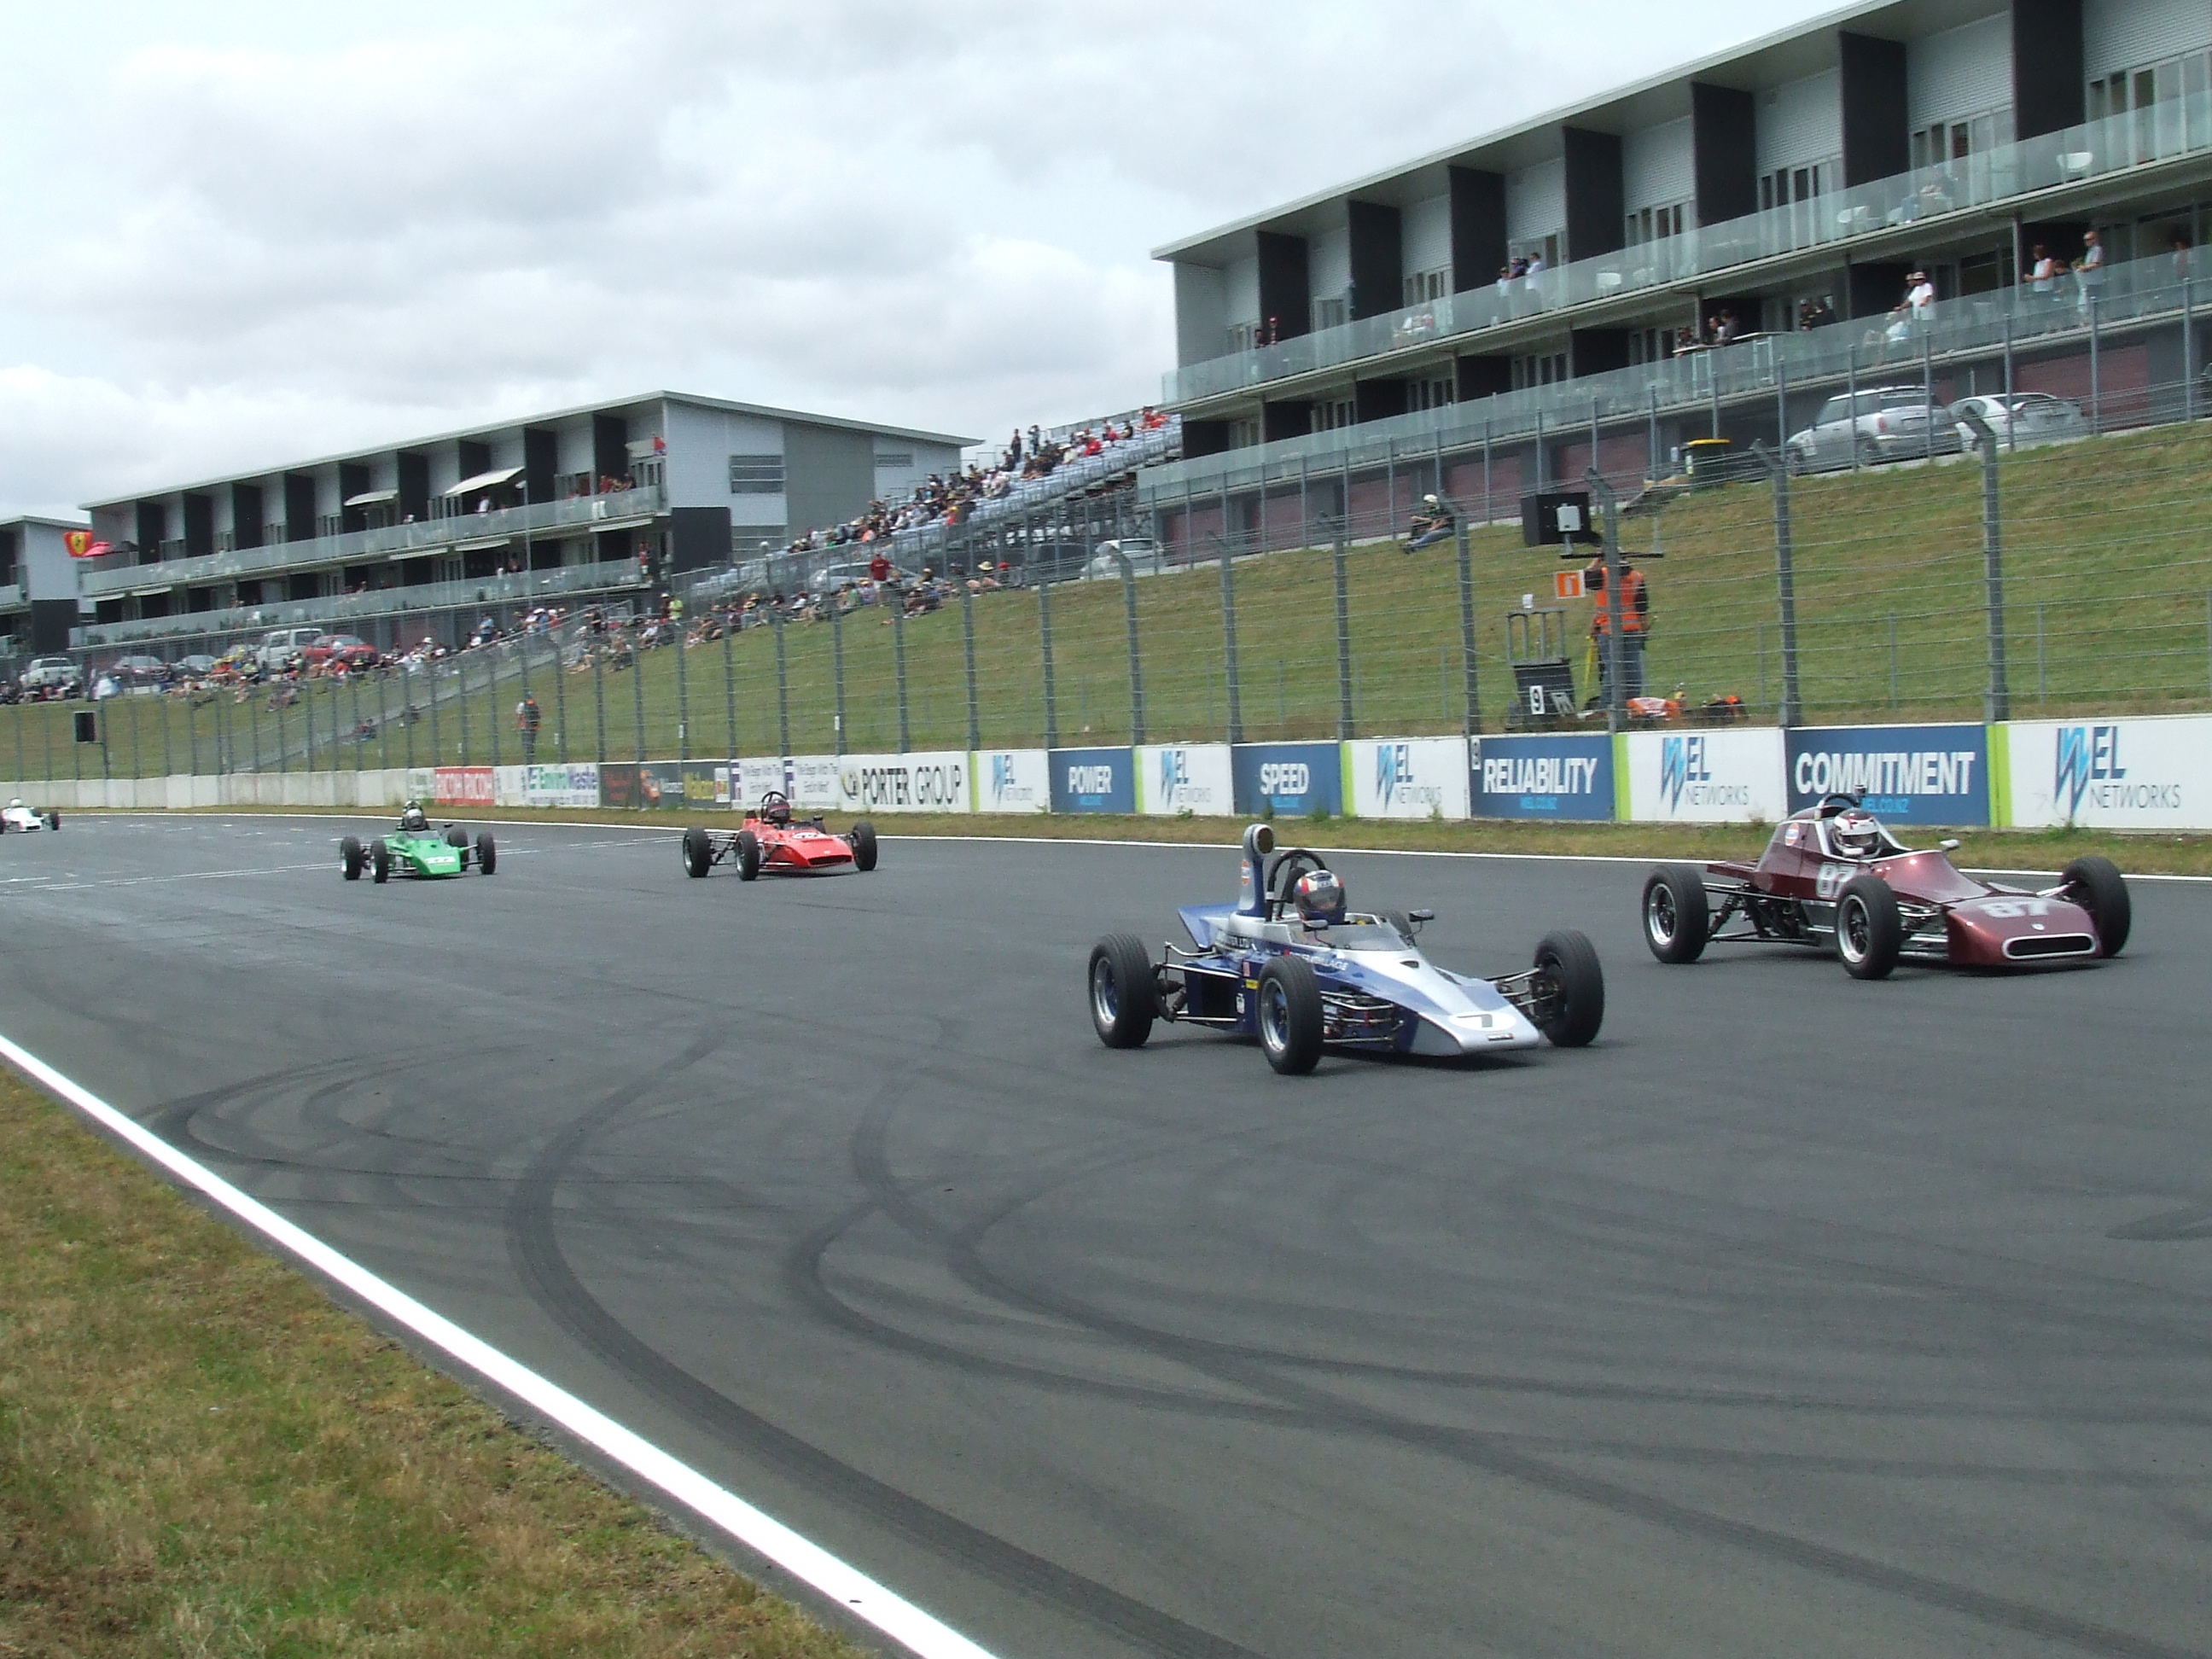 The lads still haven't sorted out who is going to lead into the first corner